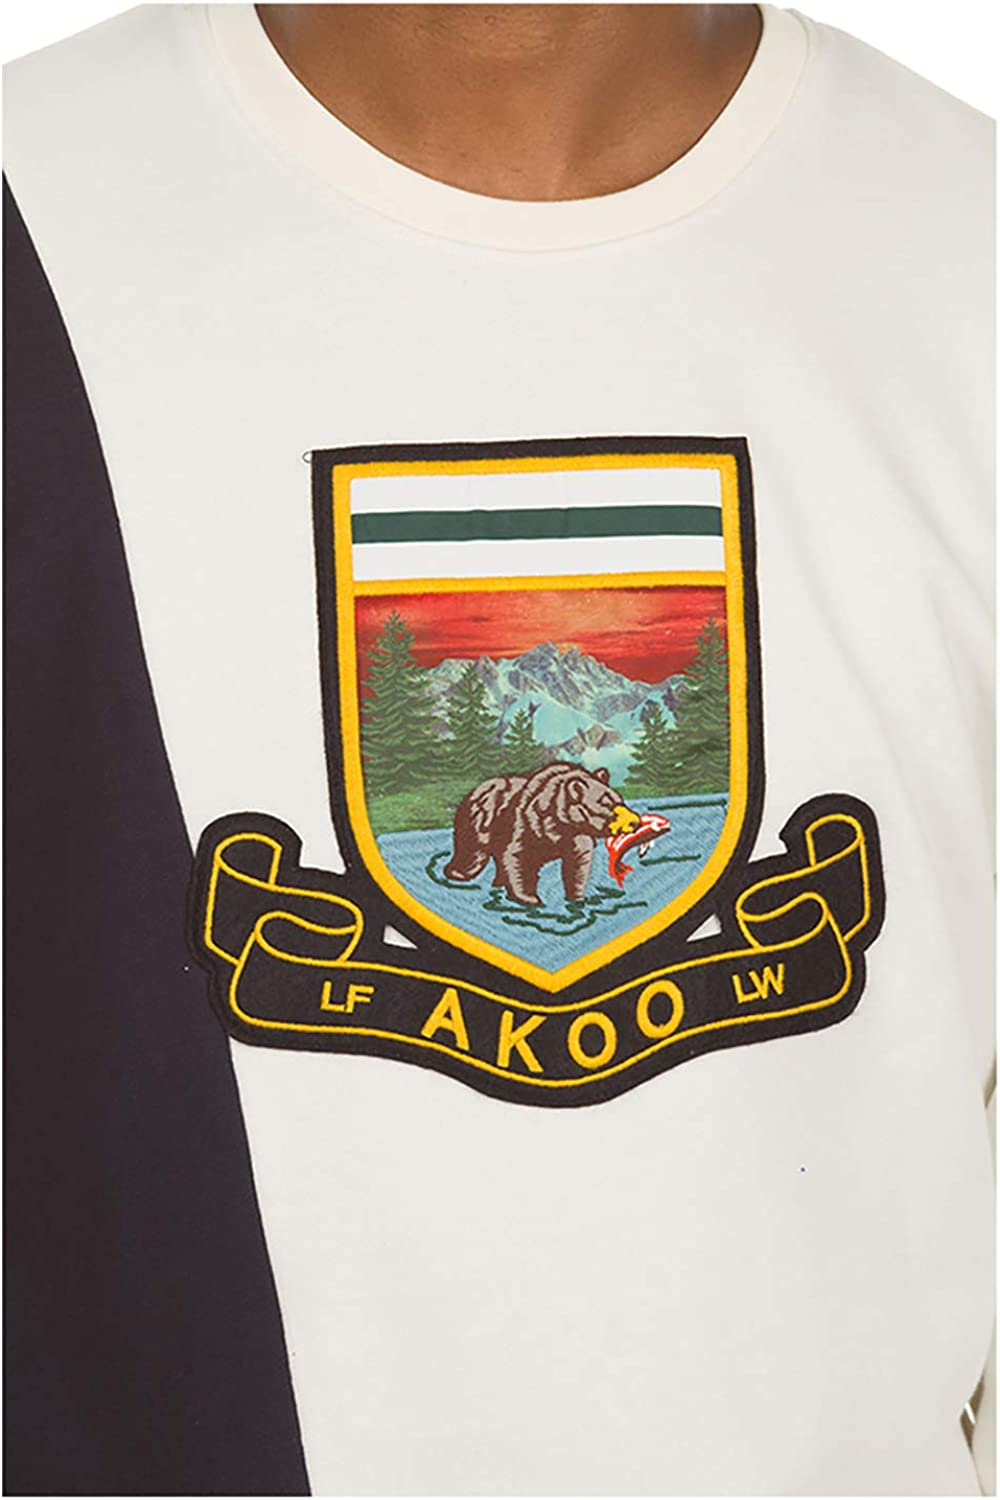 Akoo Big Fish Long Sleeve Tee in 3 Color Choices 791-8212